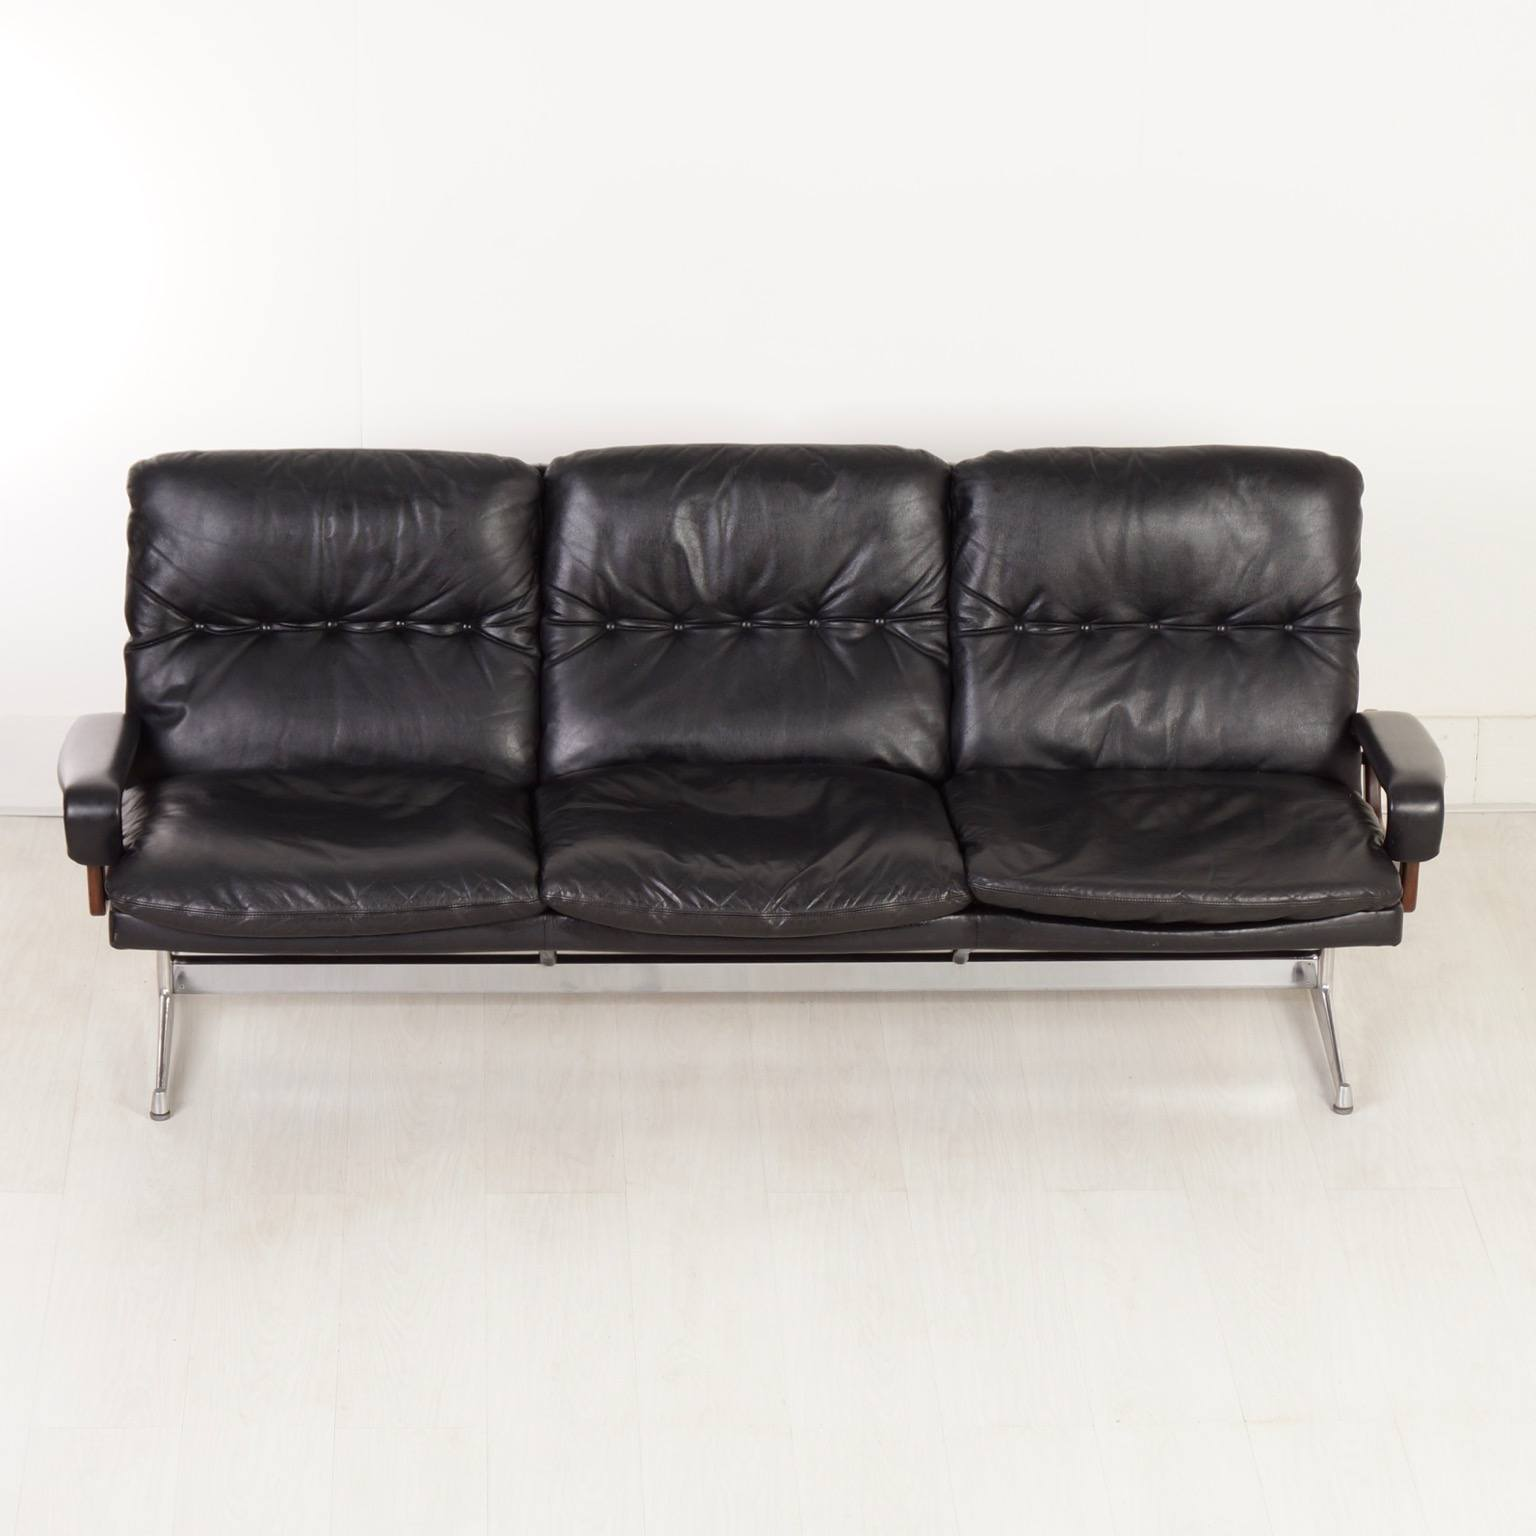 Sofa King Easy: King Sofa By Andre Vandenbeuck For Strassle, 1965